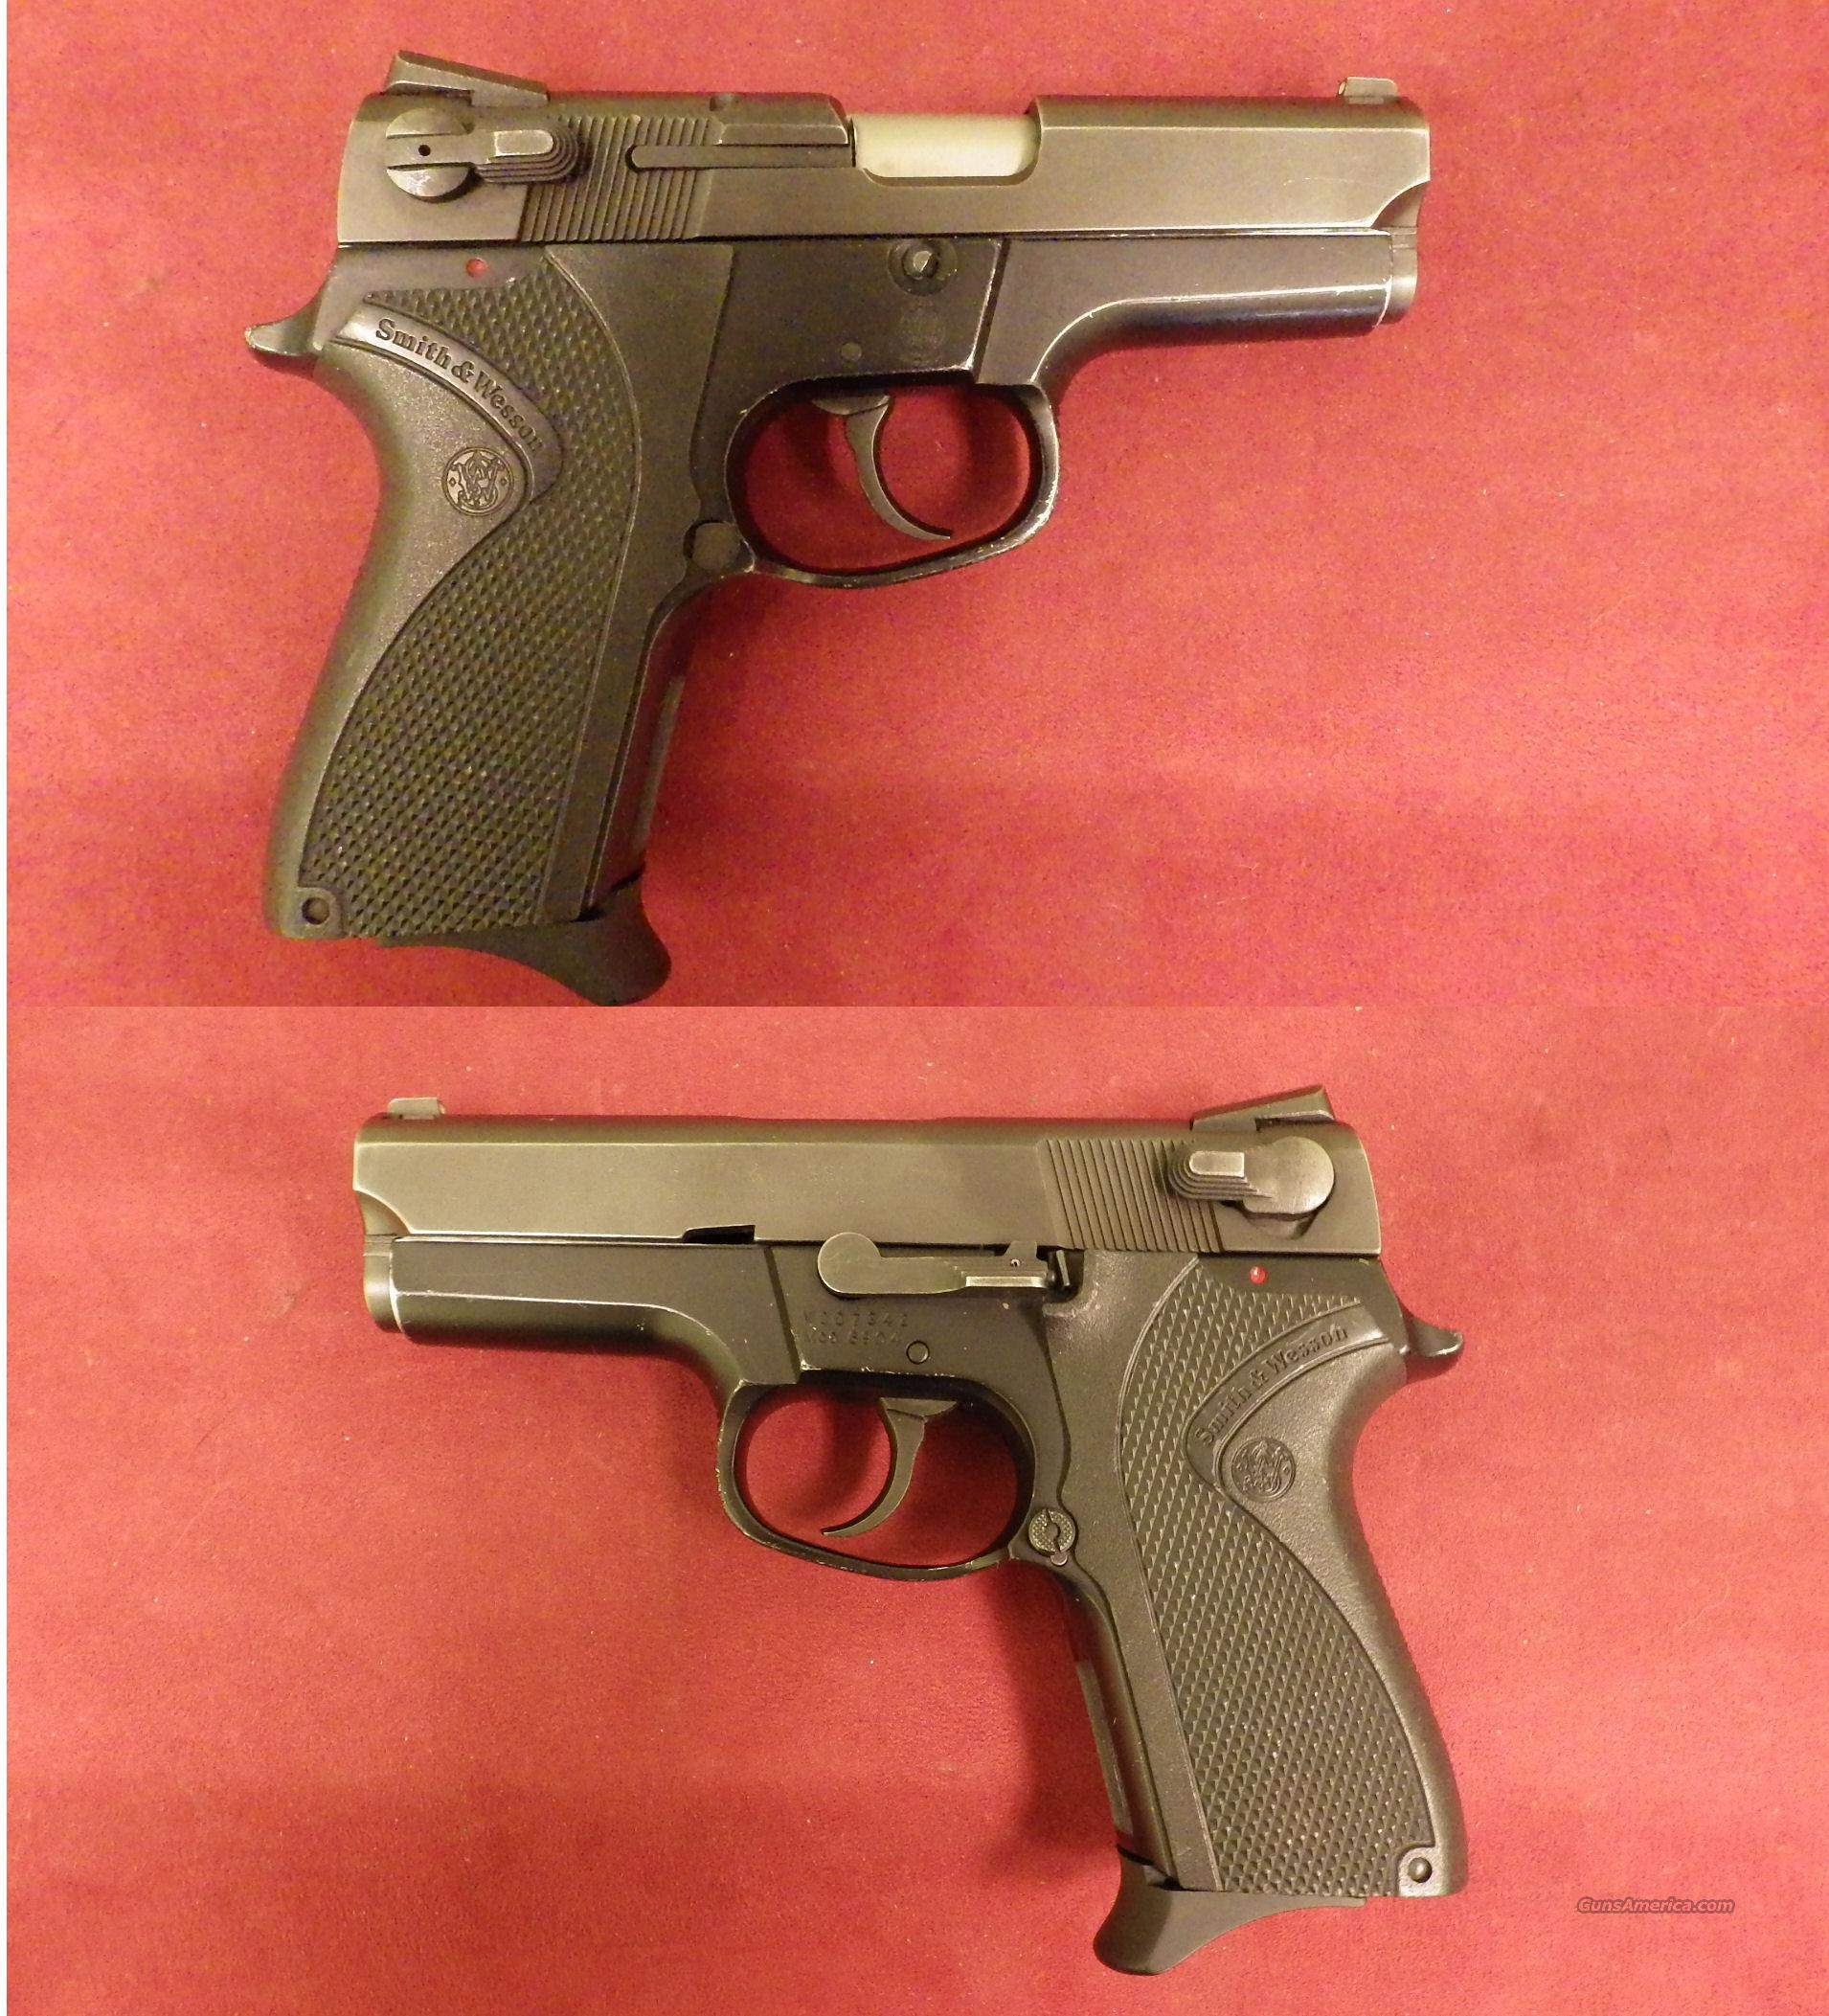 Smith & Wesson Mdl 6904 9mm *MUST CALL*  Guns > Pistols > Smith & Wesson Pistols - Autos > Alloy Frame